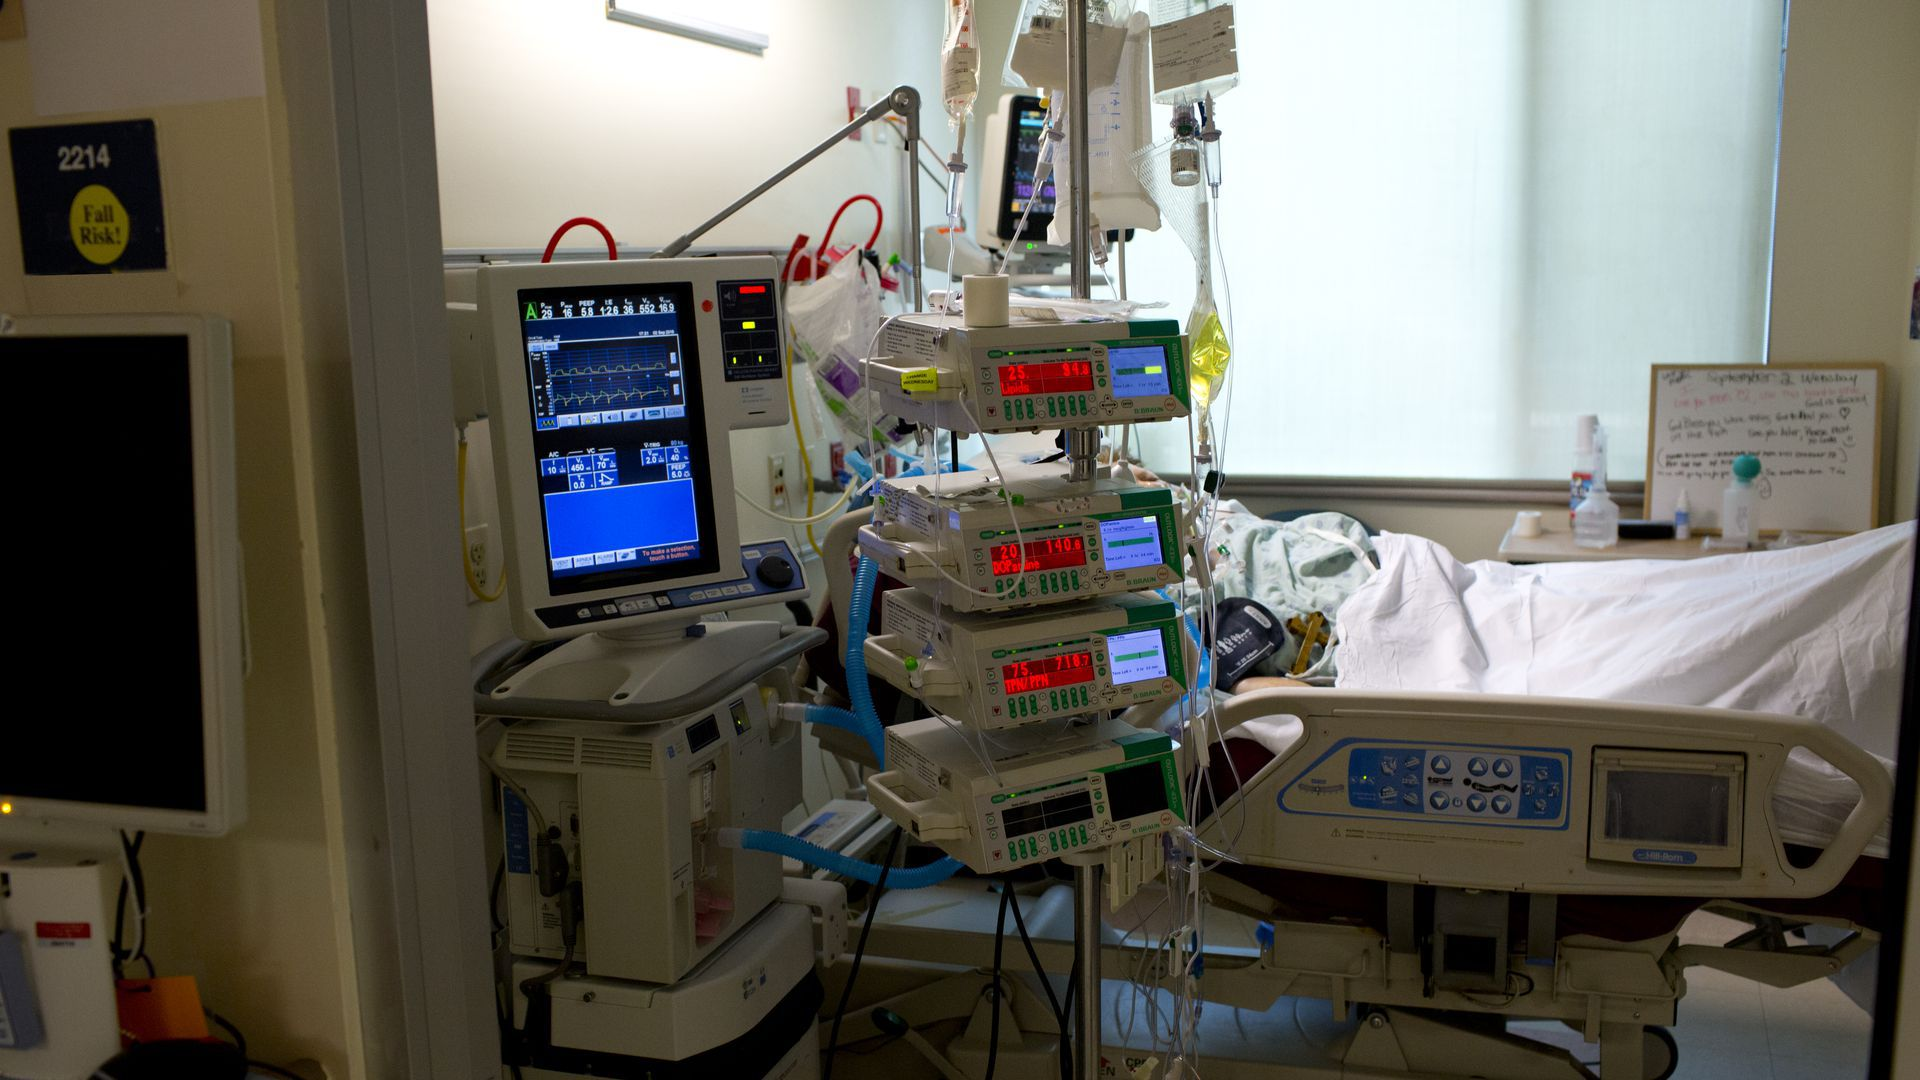 Hospital bed with machines next to it